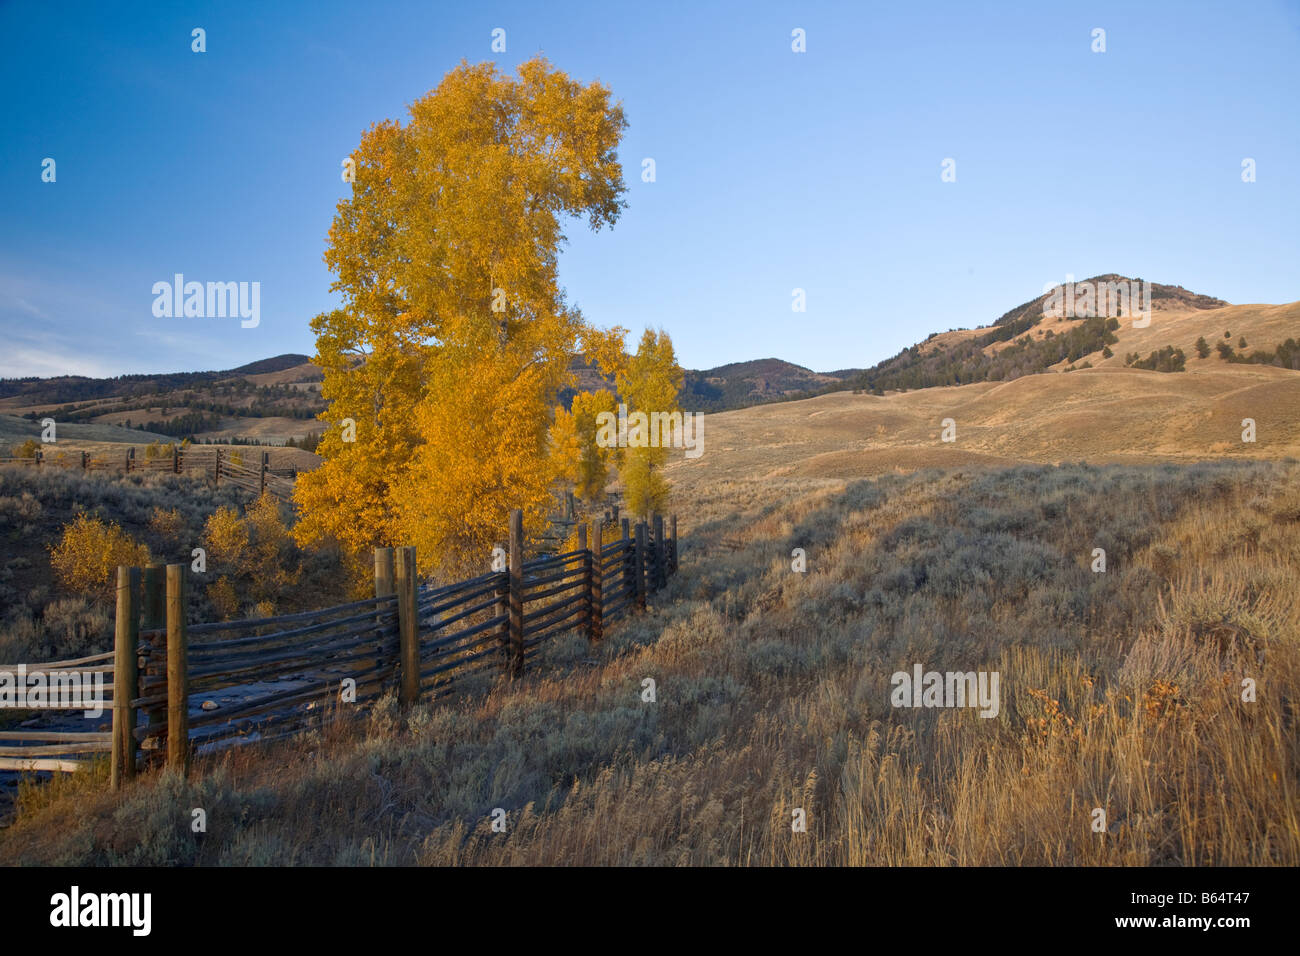 Yellowstone National Park WY: Fall colored cottonwood trees along the coral fence at Buffalo Ranch in the Lamar - Stock Image